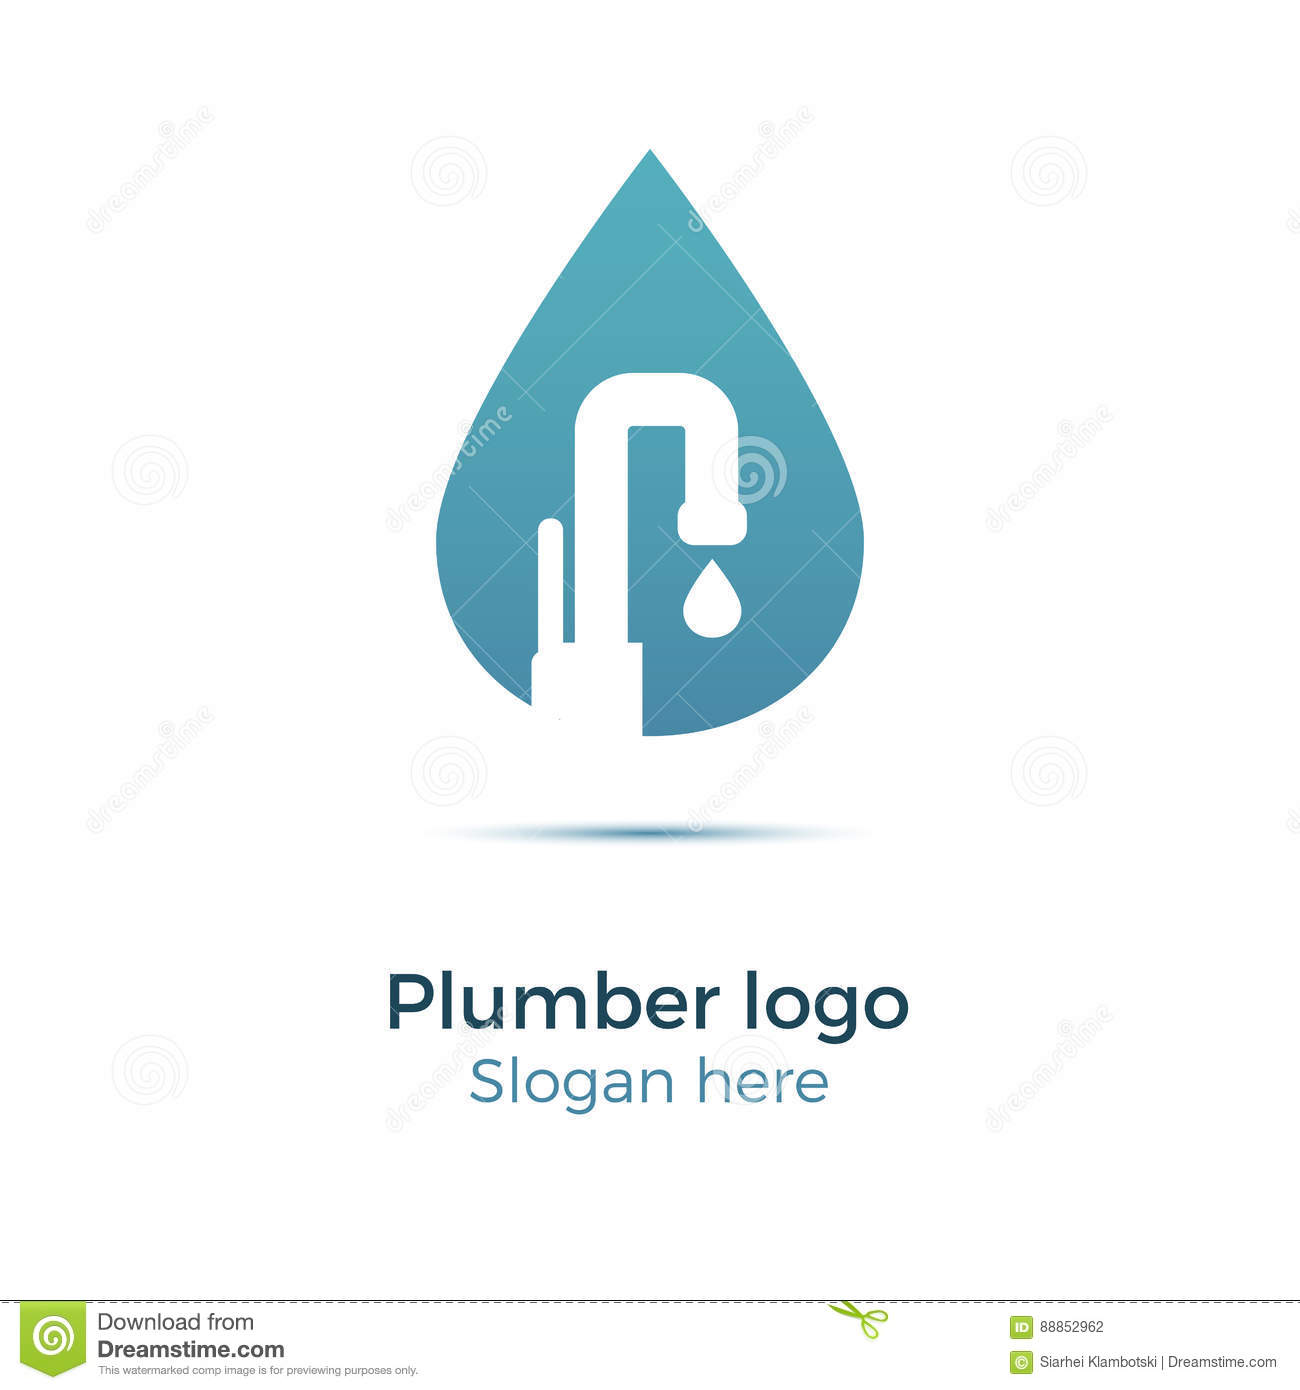 Plumbing company logo stock vector. Illustration of flow - 88852962